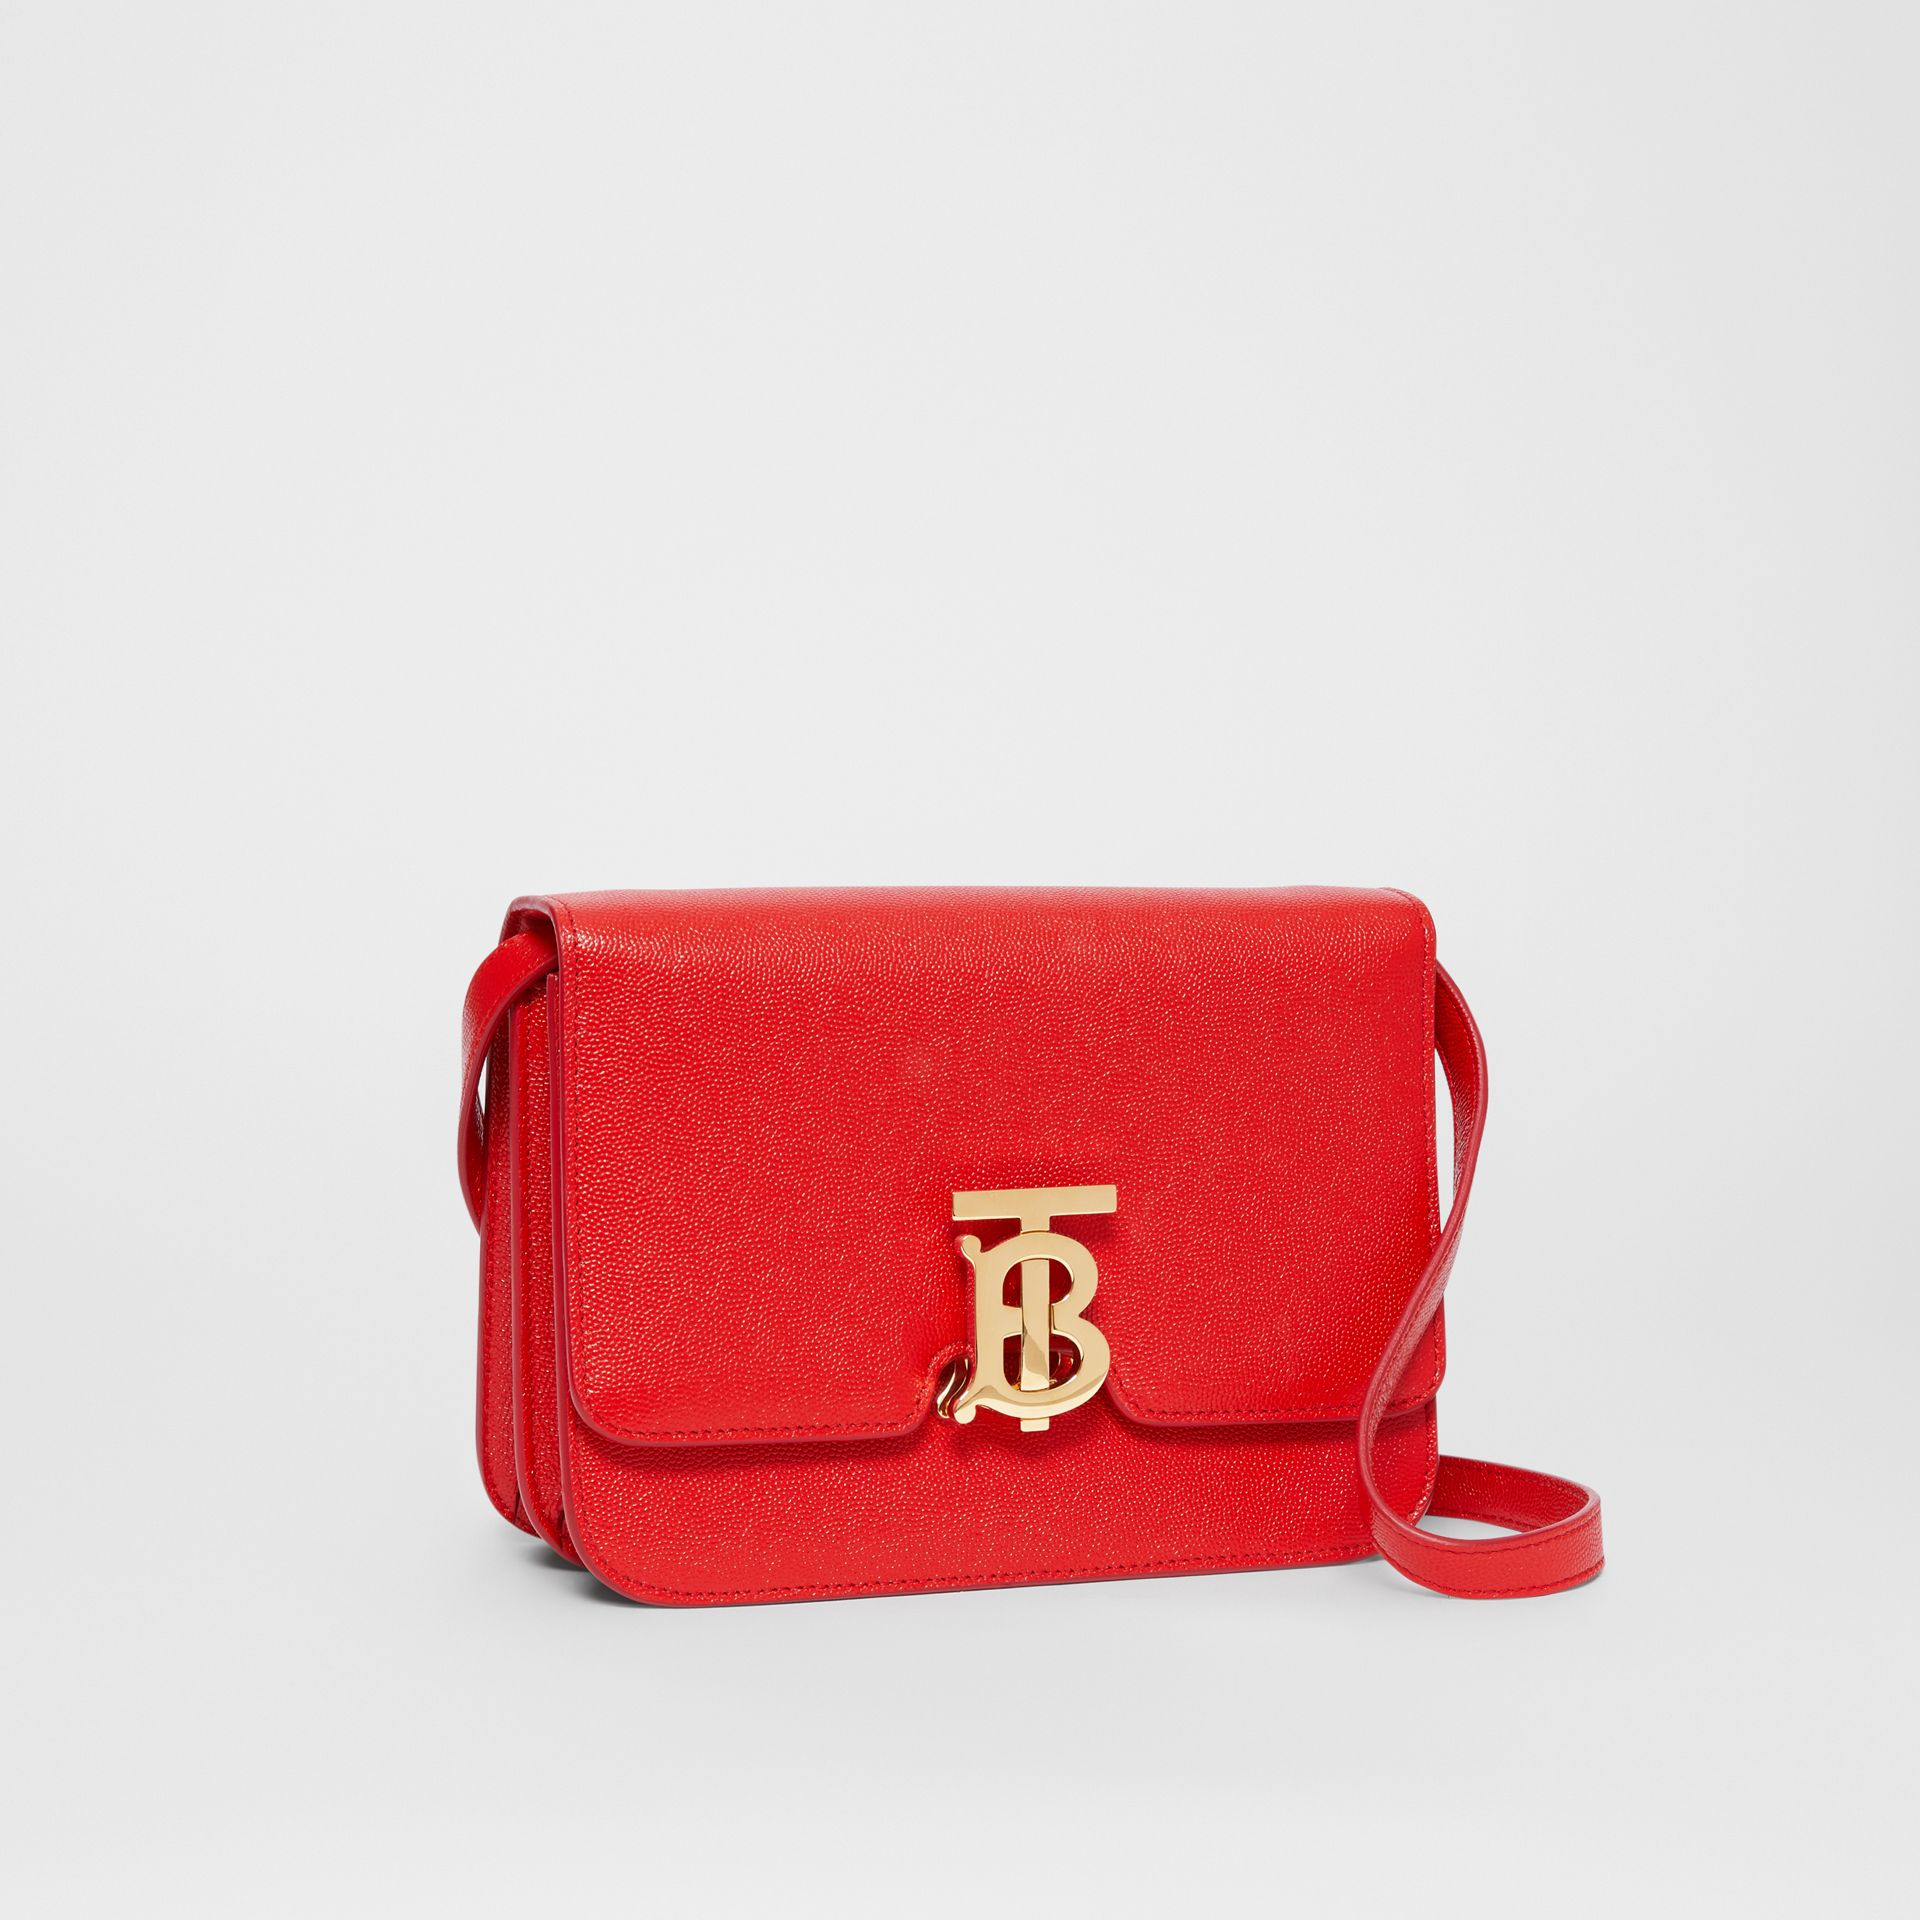 Small Grainy Leather TB Bag in Bright Red - Women | Burberry Australia - gallery image 6